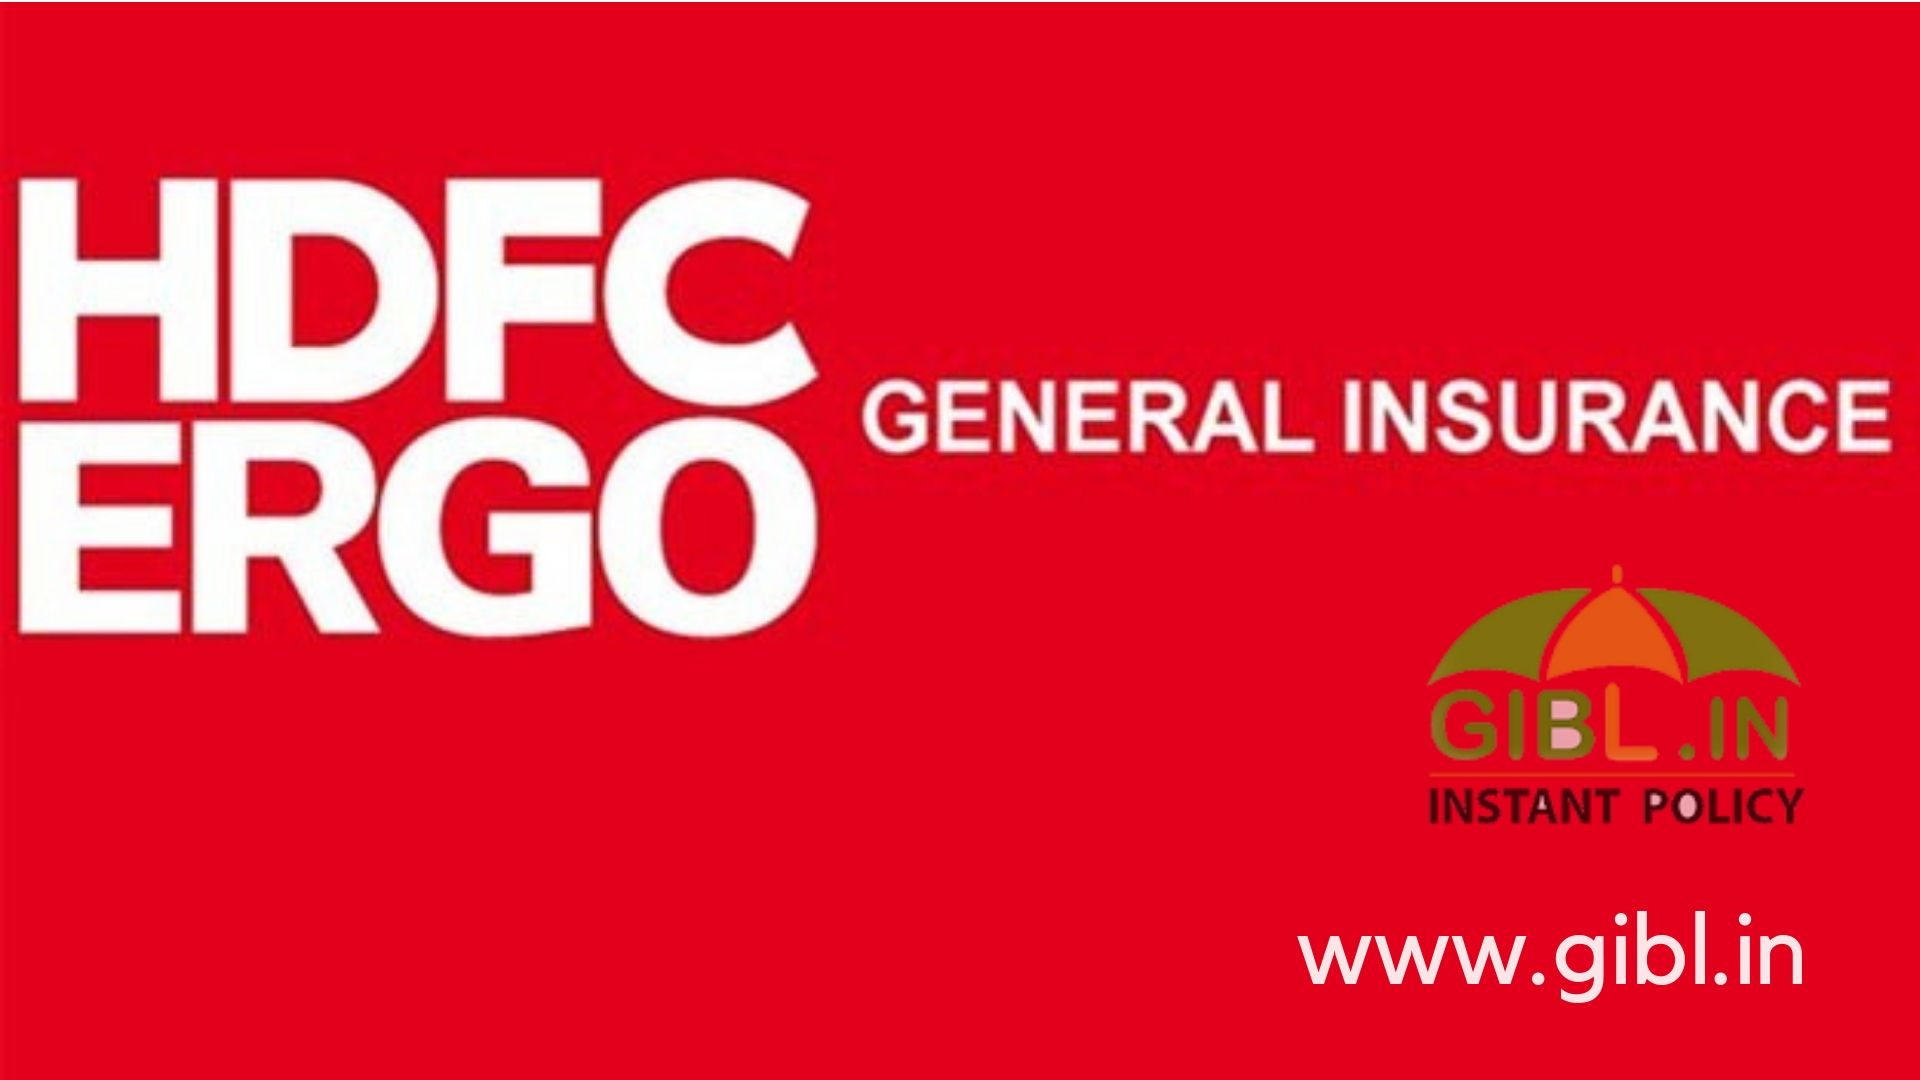 Hdfc Ergo Offers A Plethora Of General Insurance Products If You